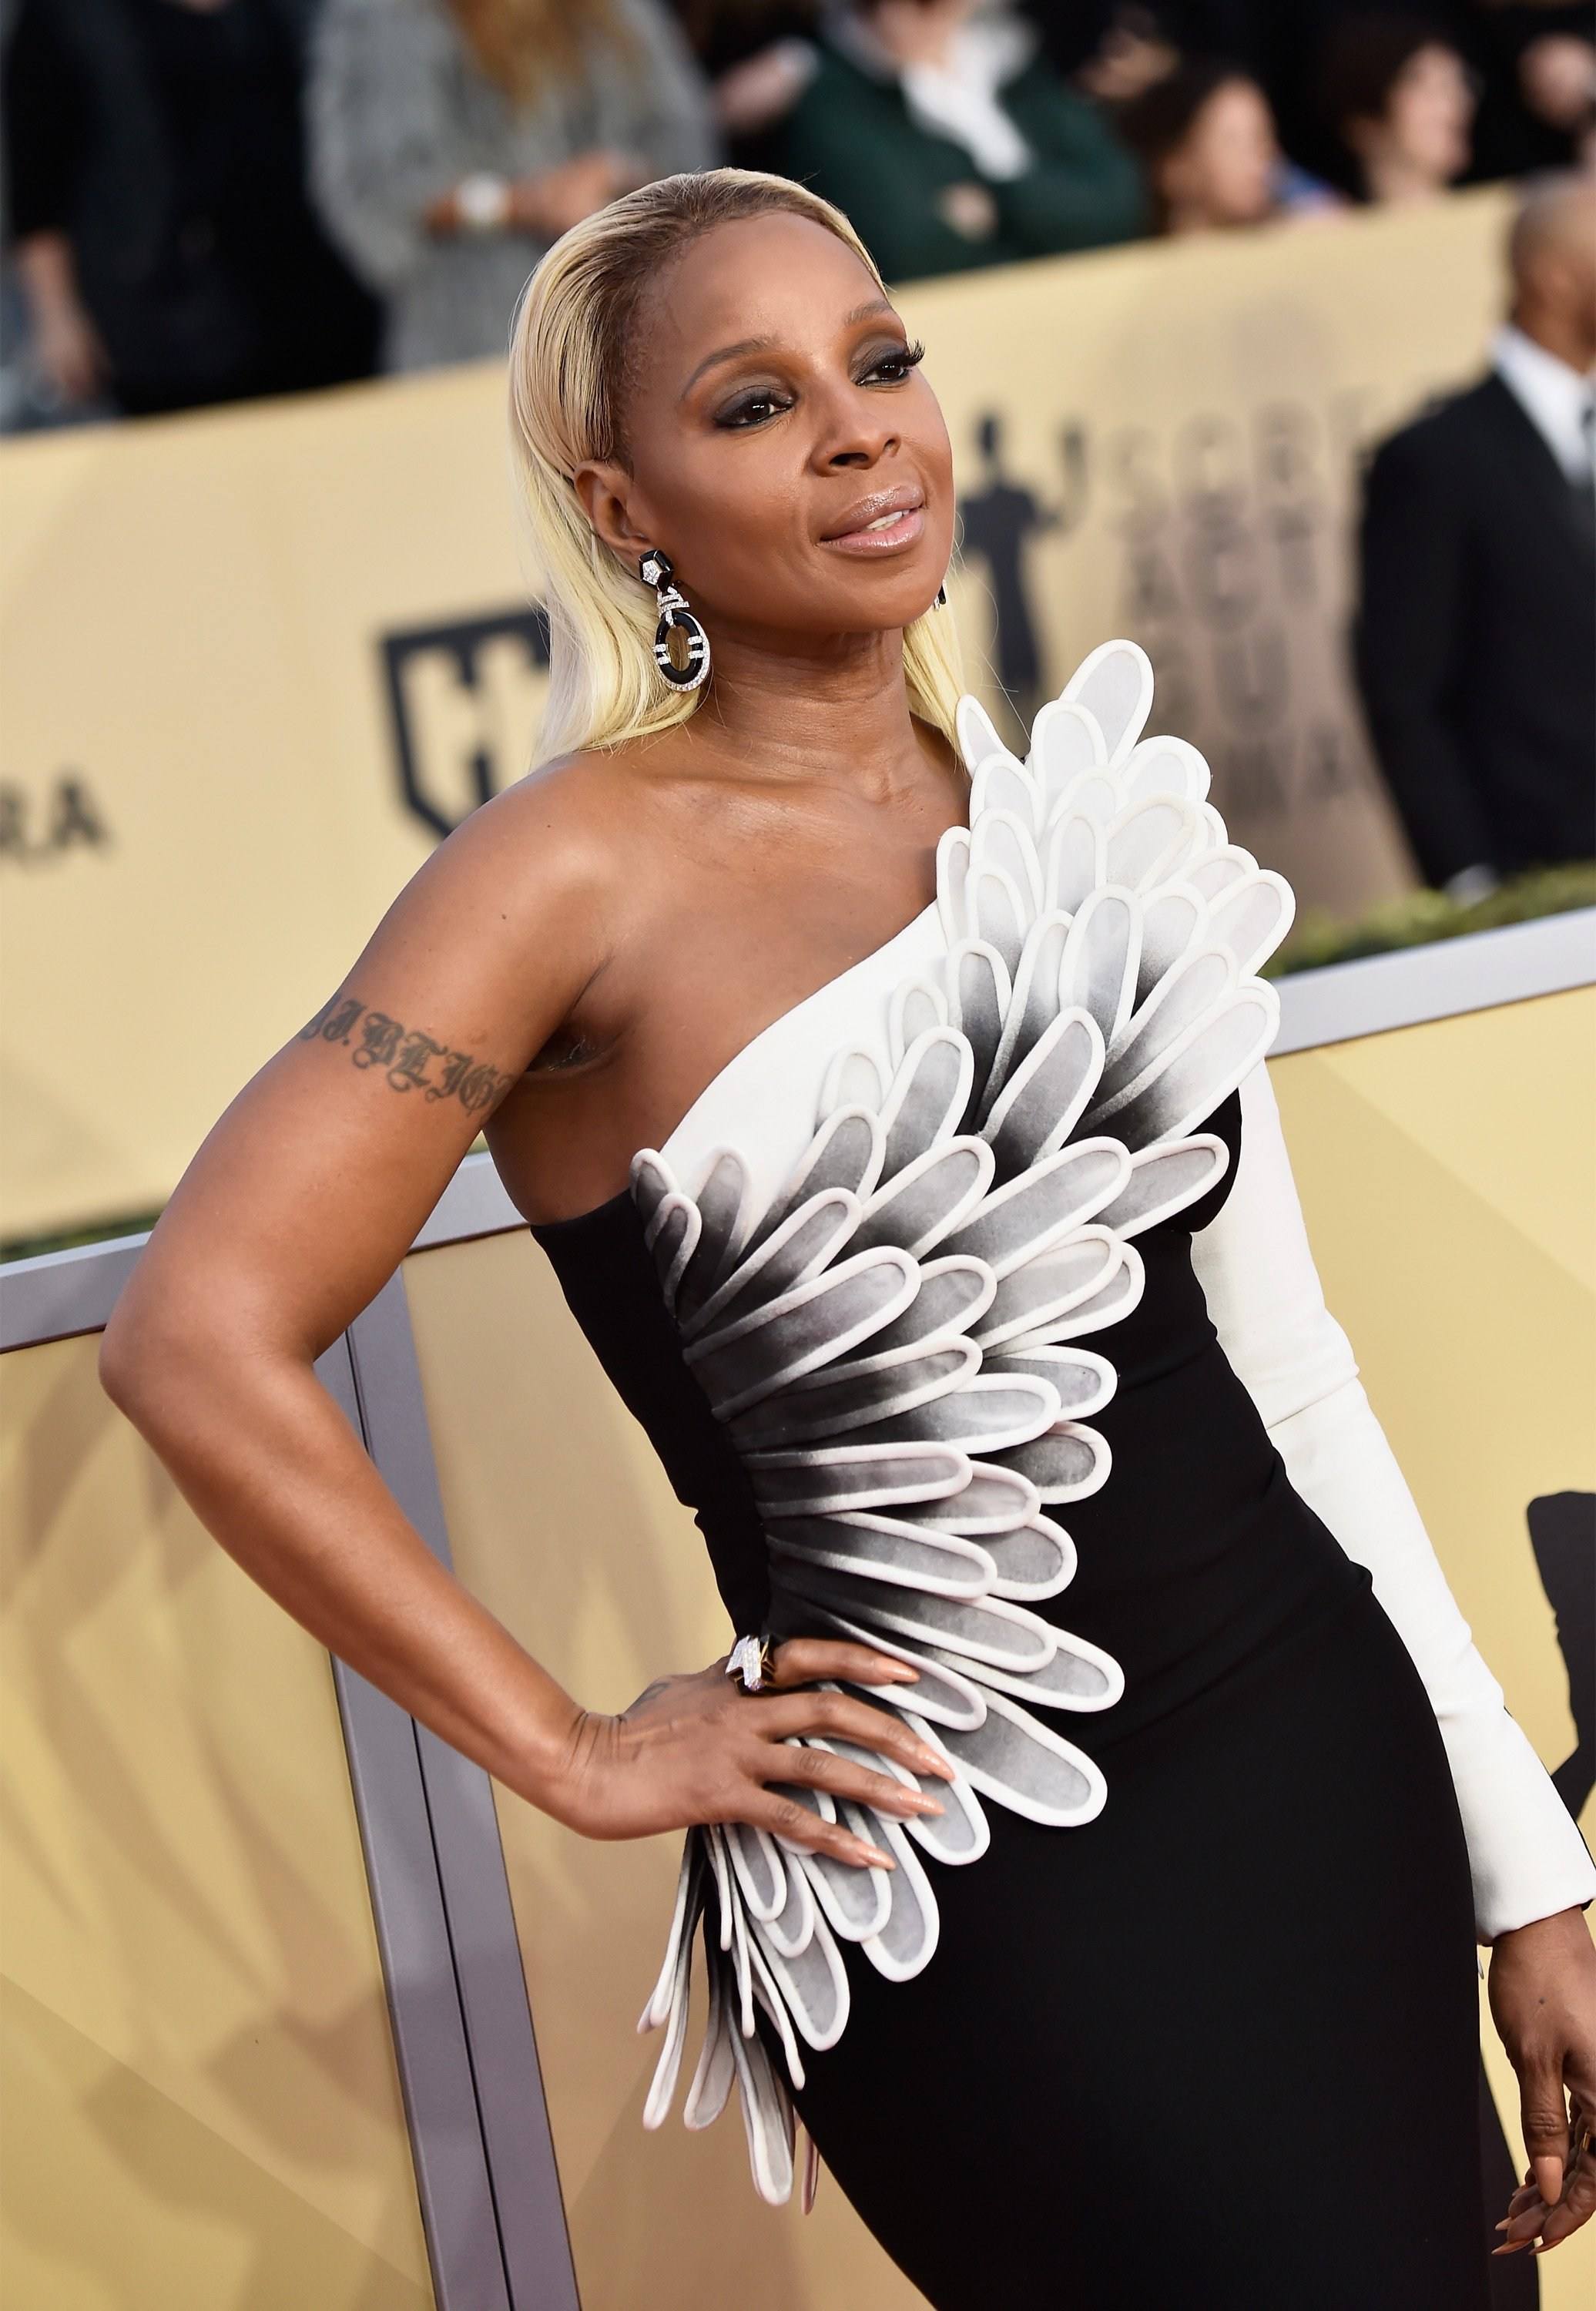 Mary J. Blige at the 24th Annual Screen Actors Guild Awards at The Shrine Auditorium on January 21, 2018 in Los Angeles, California.| Source: Getty Images